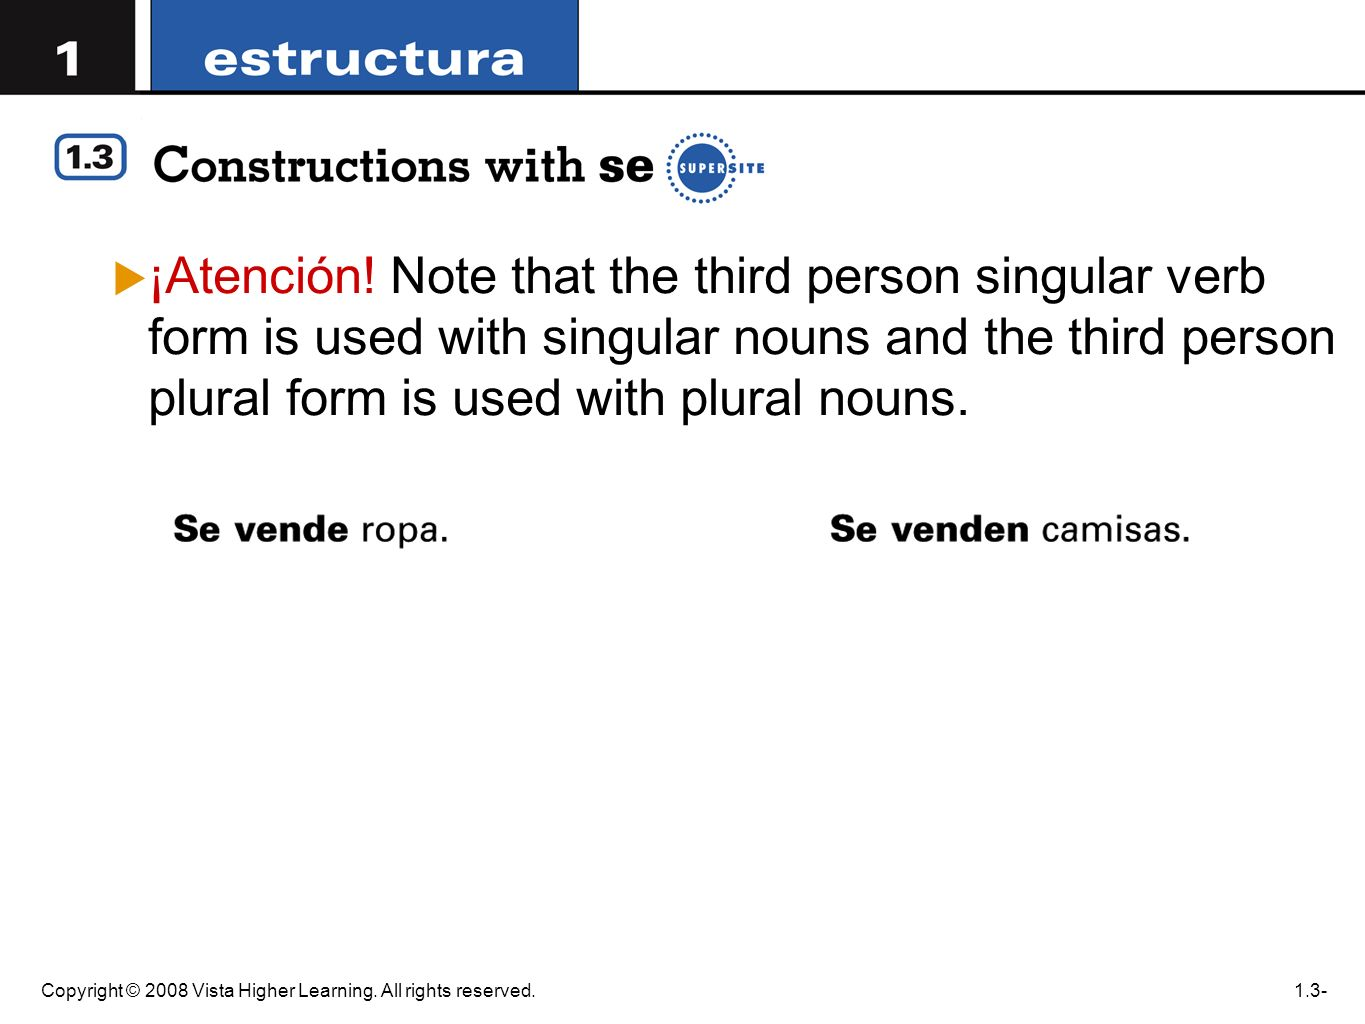 Copyright © 2008 Vista Higher Learning. All rights reserved.1.3- ¡Atención! Note that the third person singular verb form is used with singular nouns